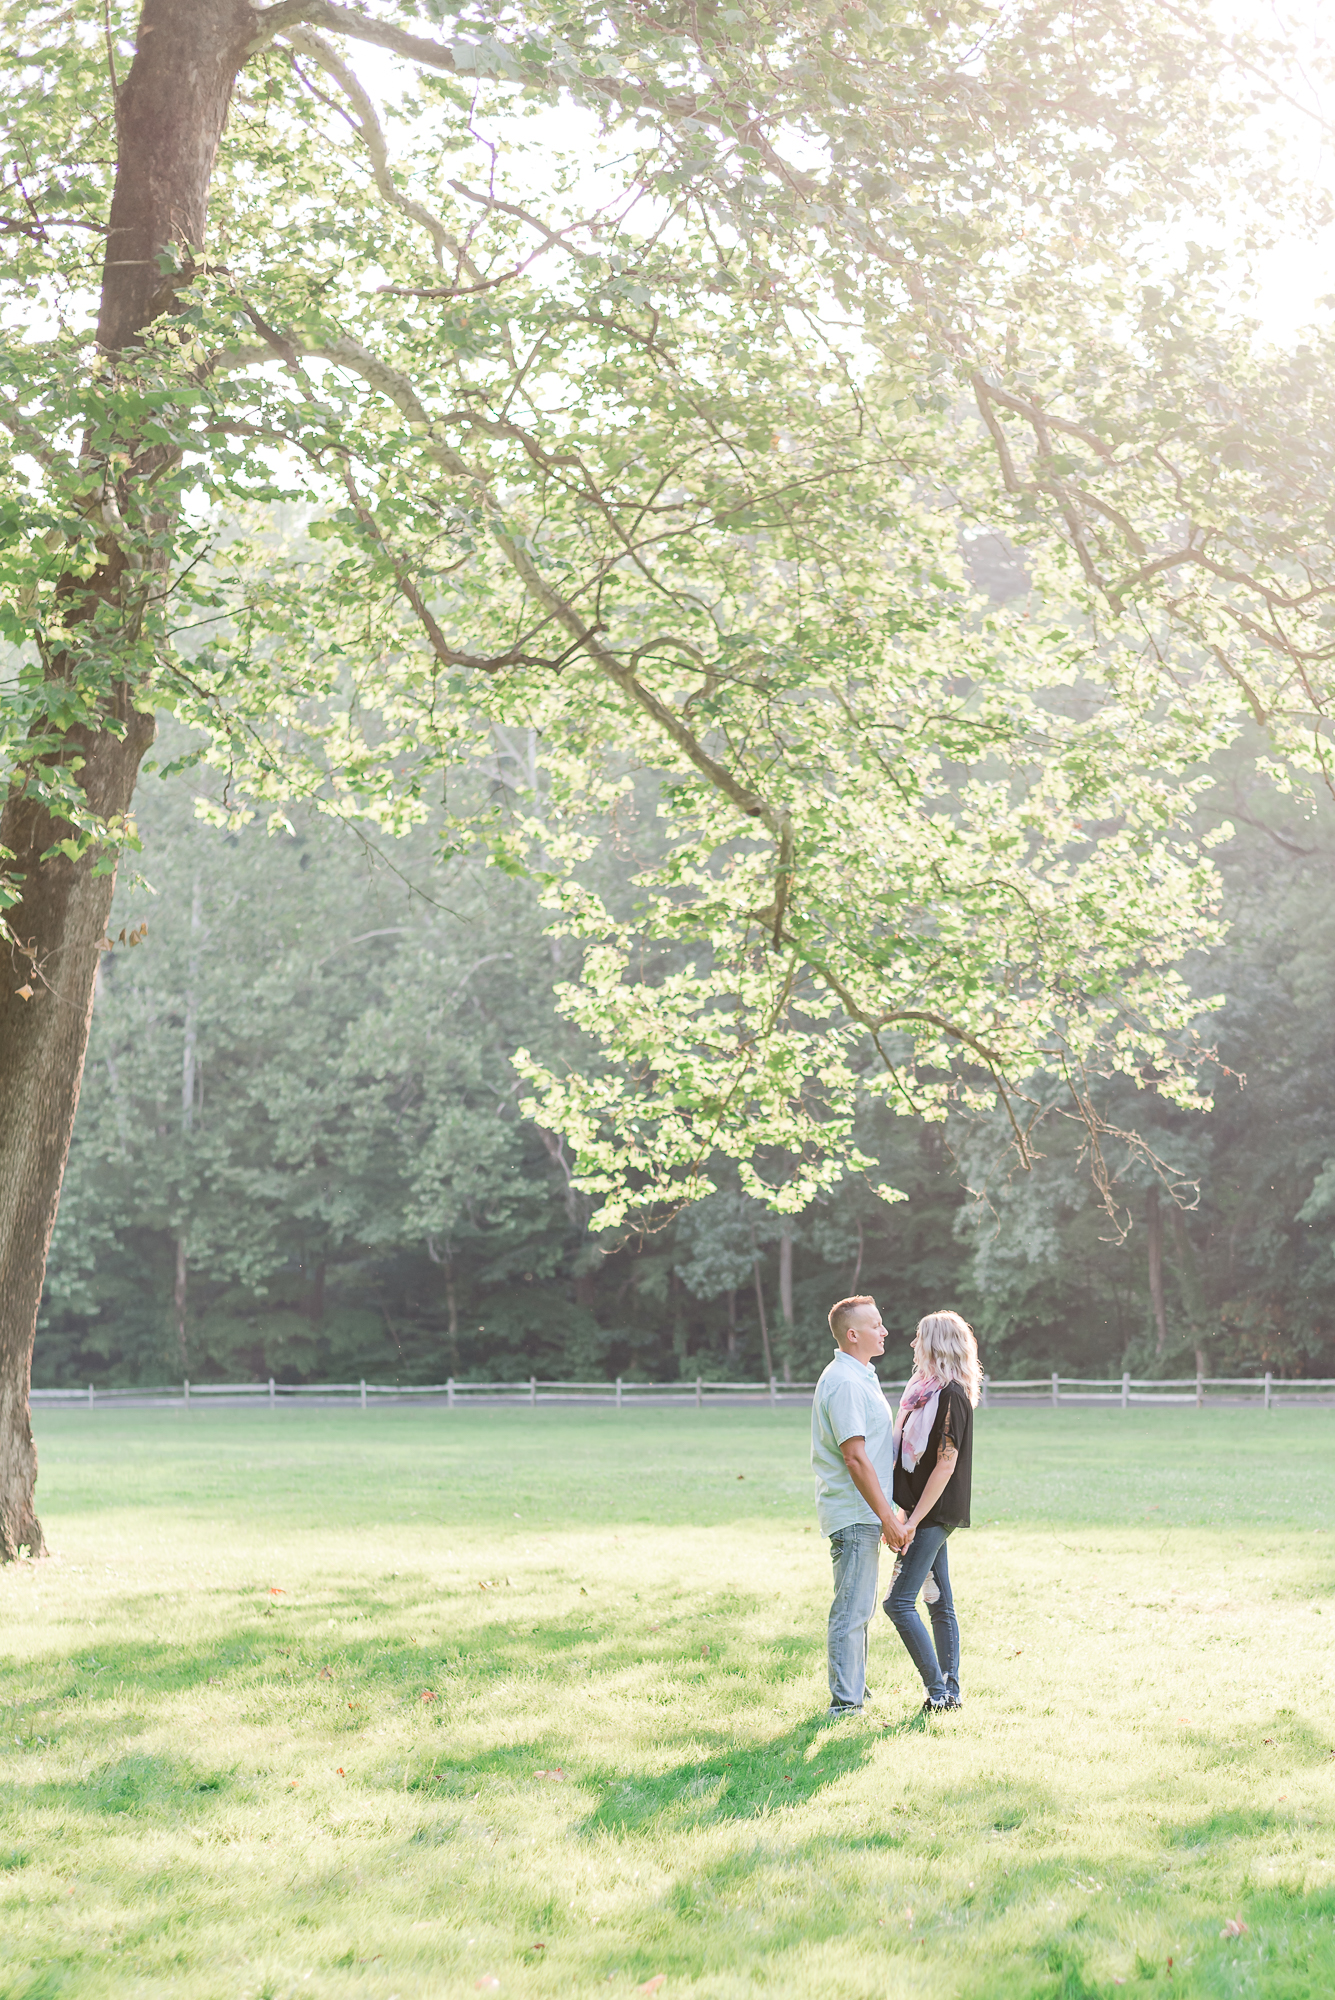 Kristina+Matt_Engagement Session_Mill Creek Park_Youngstown_Ohio-3.jpg